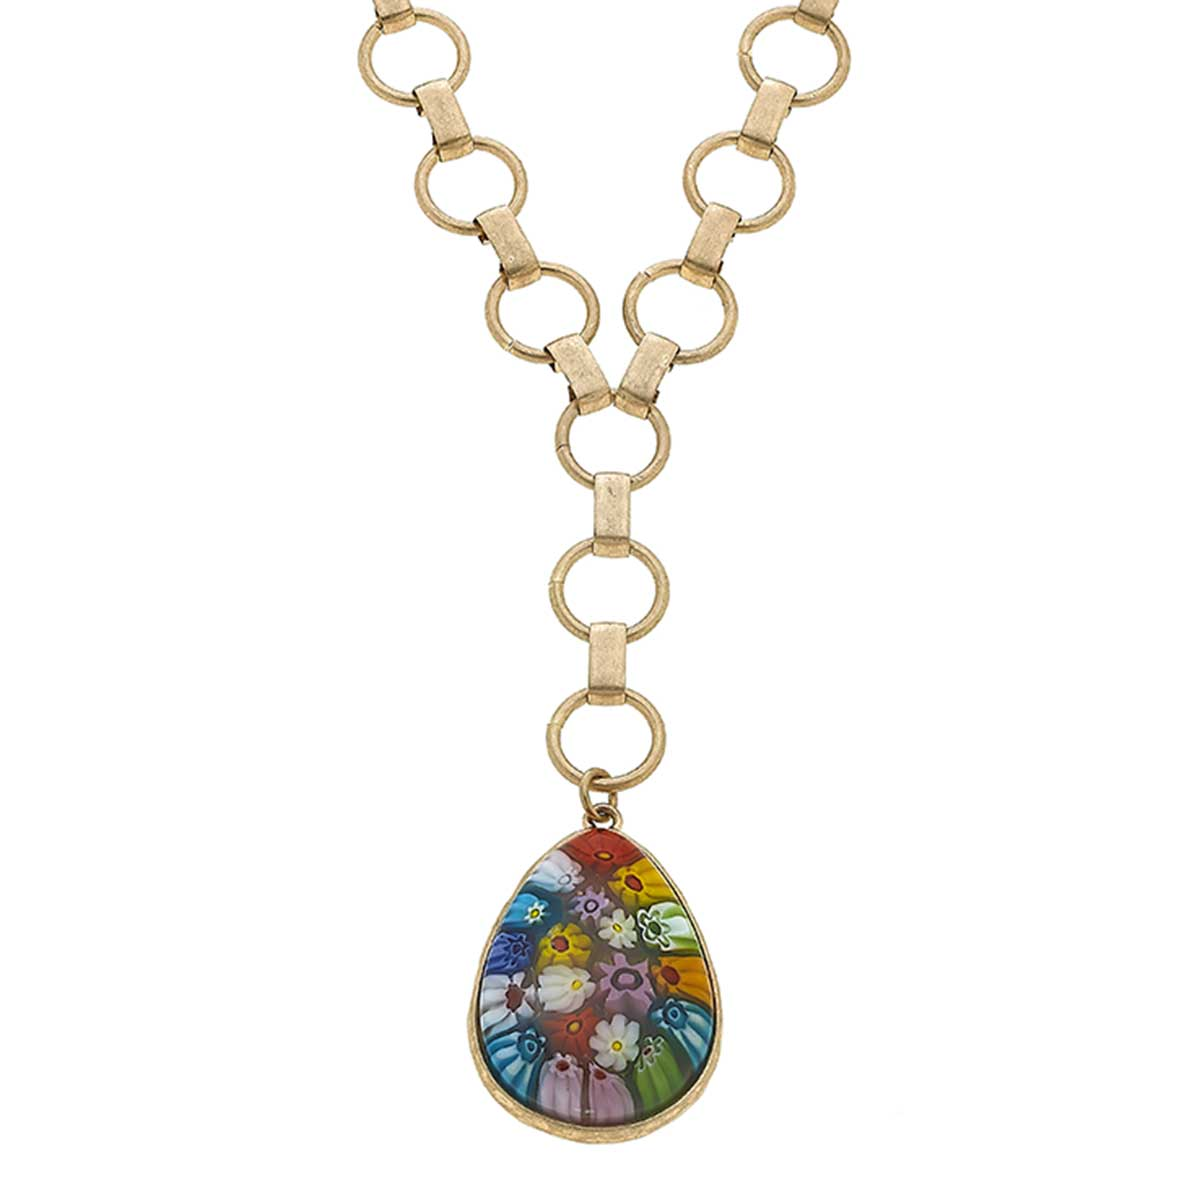 Millefiori Glass Teardrop Pendant Y Necklace in Multi